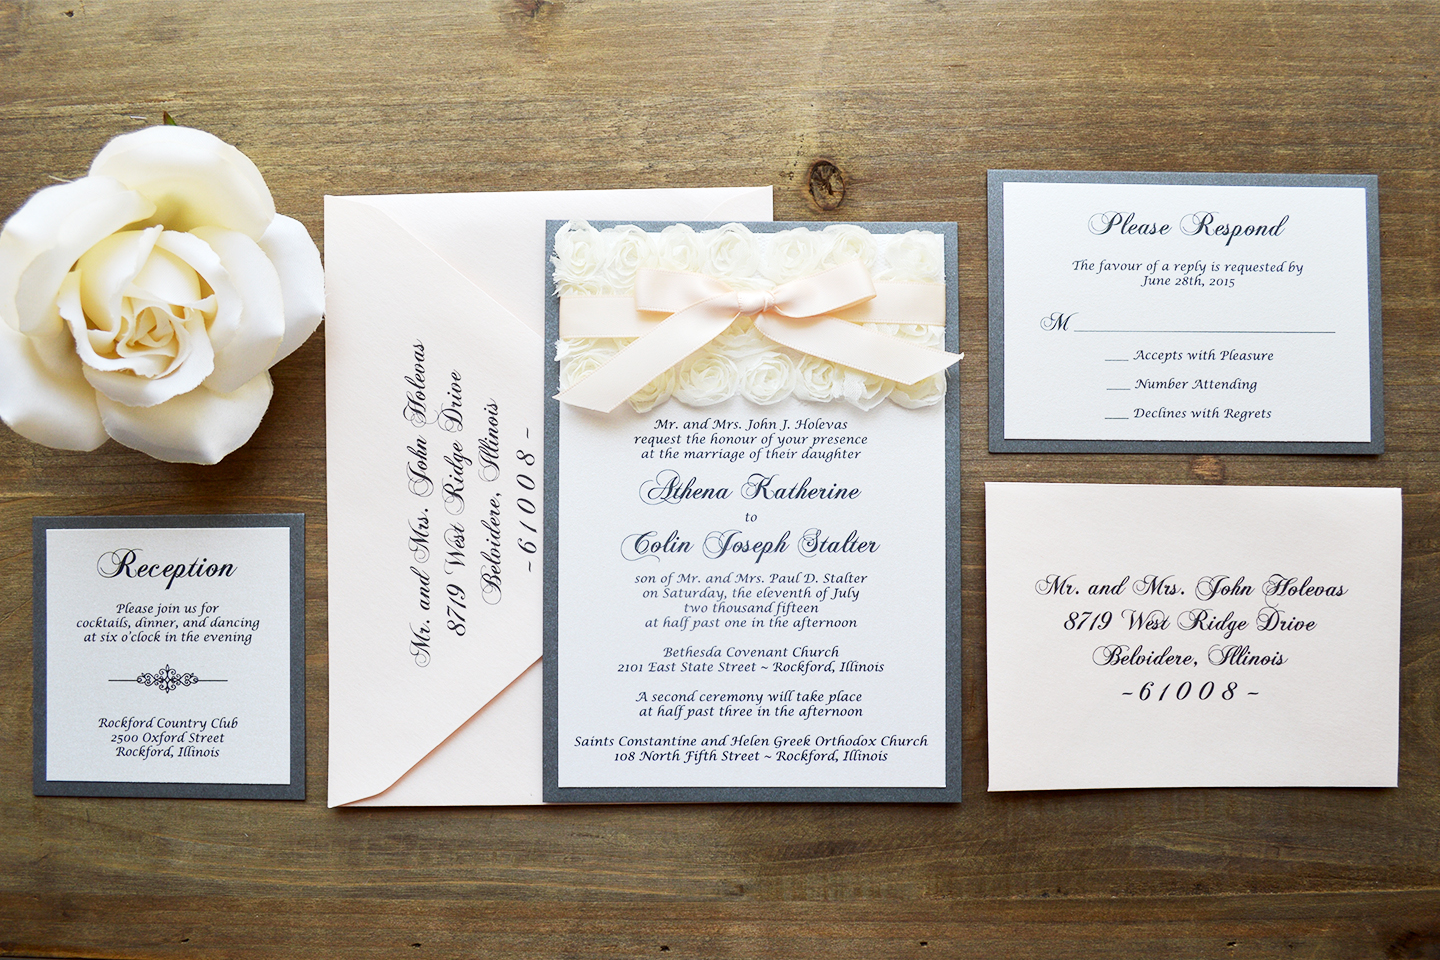 addressing envelopes wedding invitations envelopes We hope this post gives you some insight to the formalities of envelope addressing for your wedding invitations This post was inspired from The Knot s